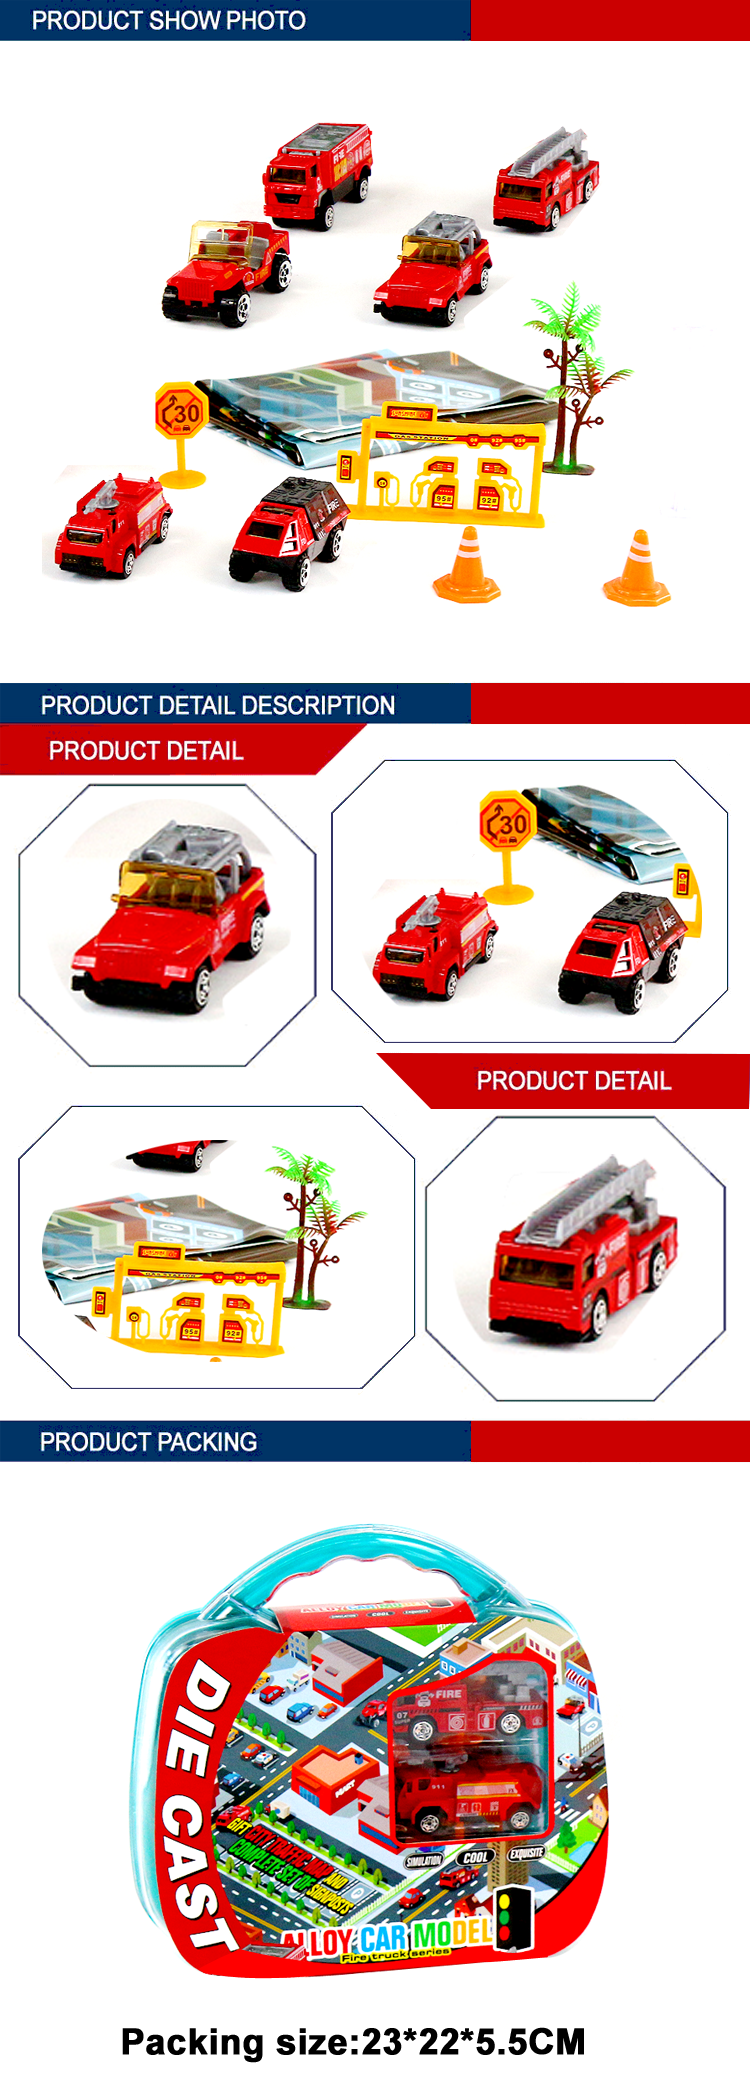 fire set toy slide 1/64 diecast car model with map